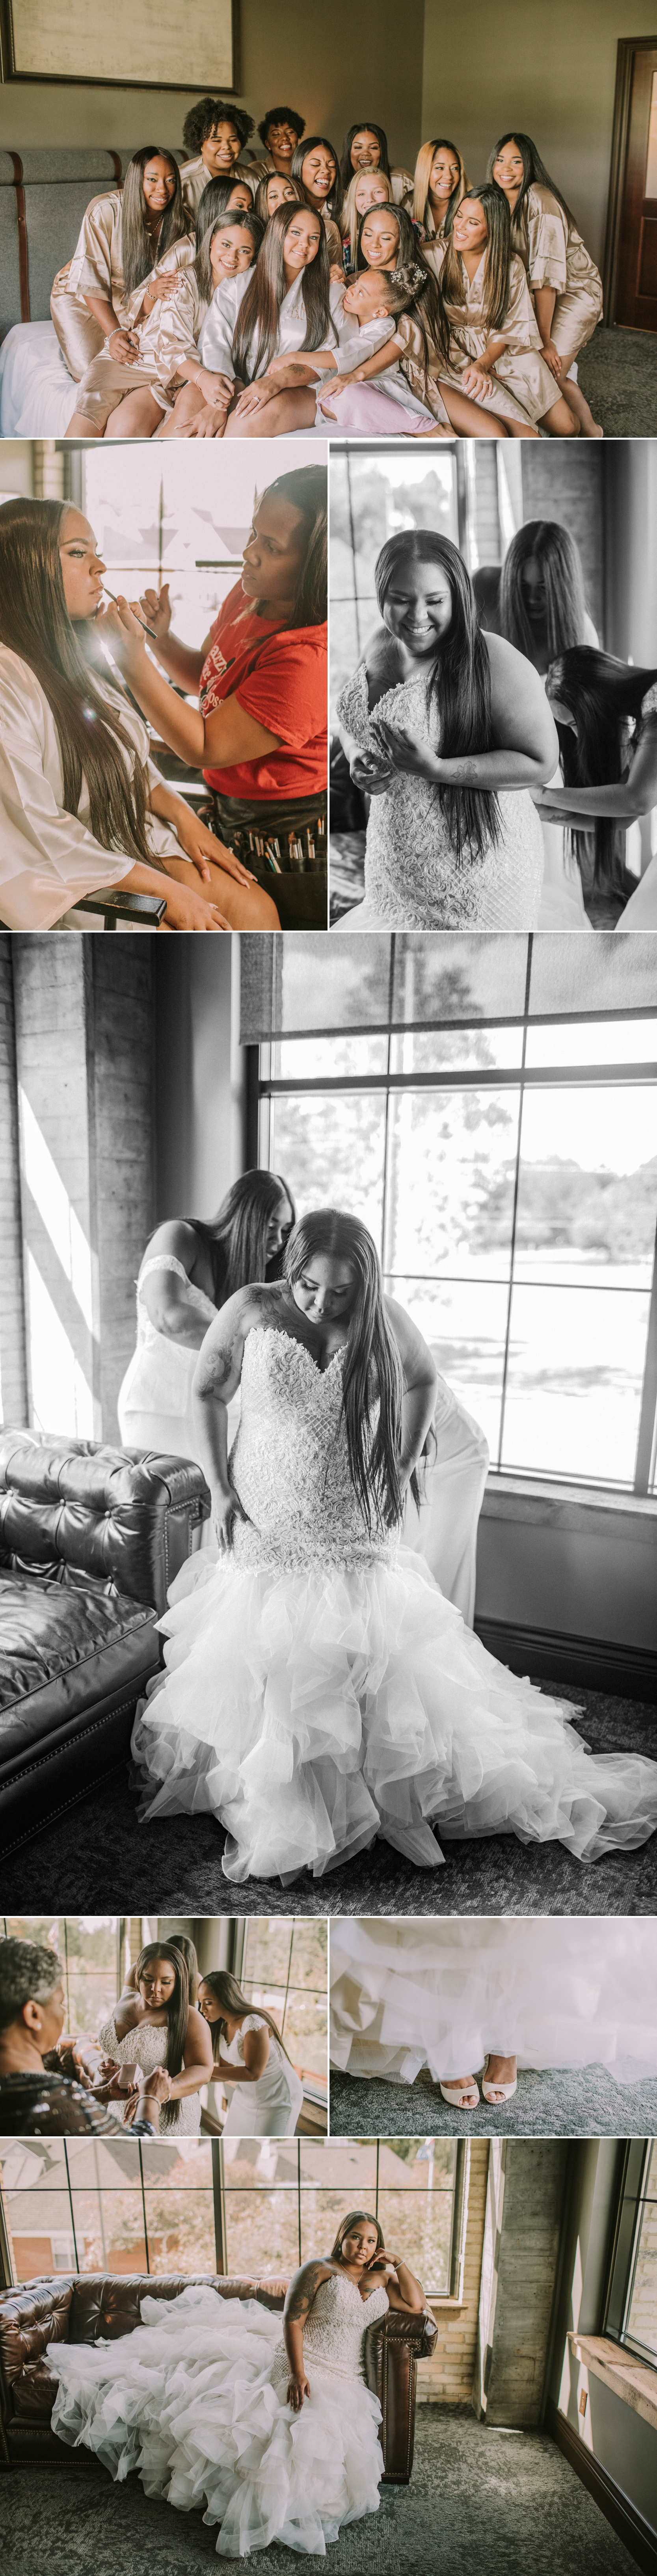 ironworks hotel bride getting ready wedding day carmel indiana